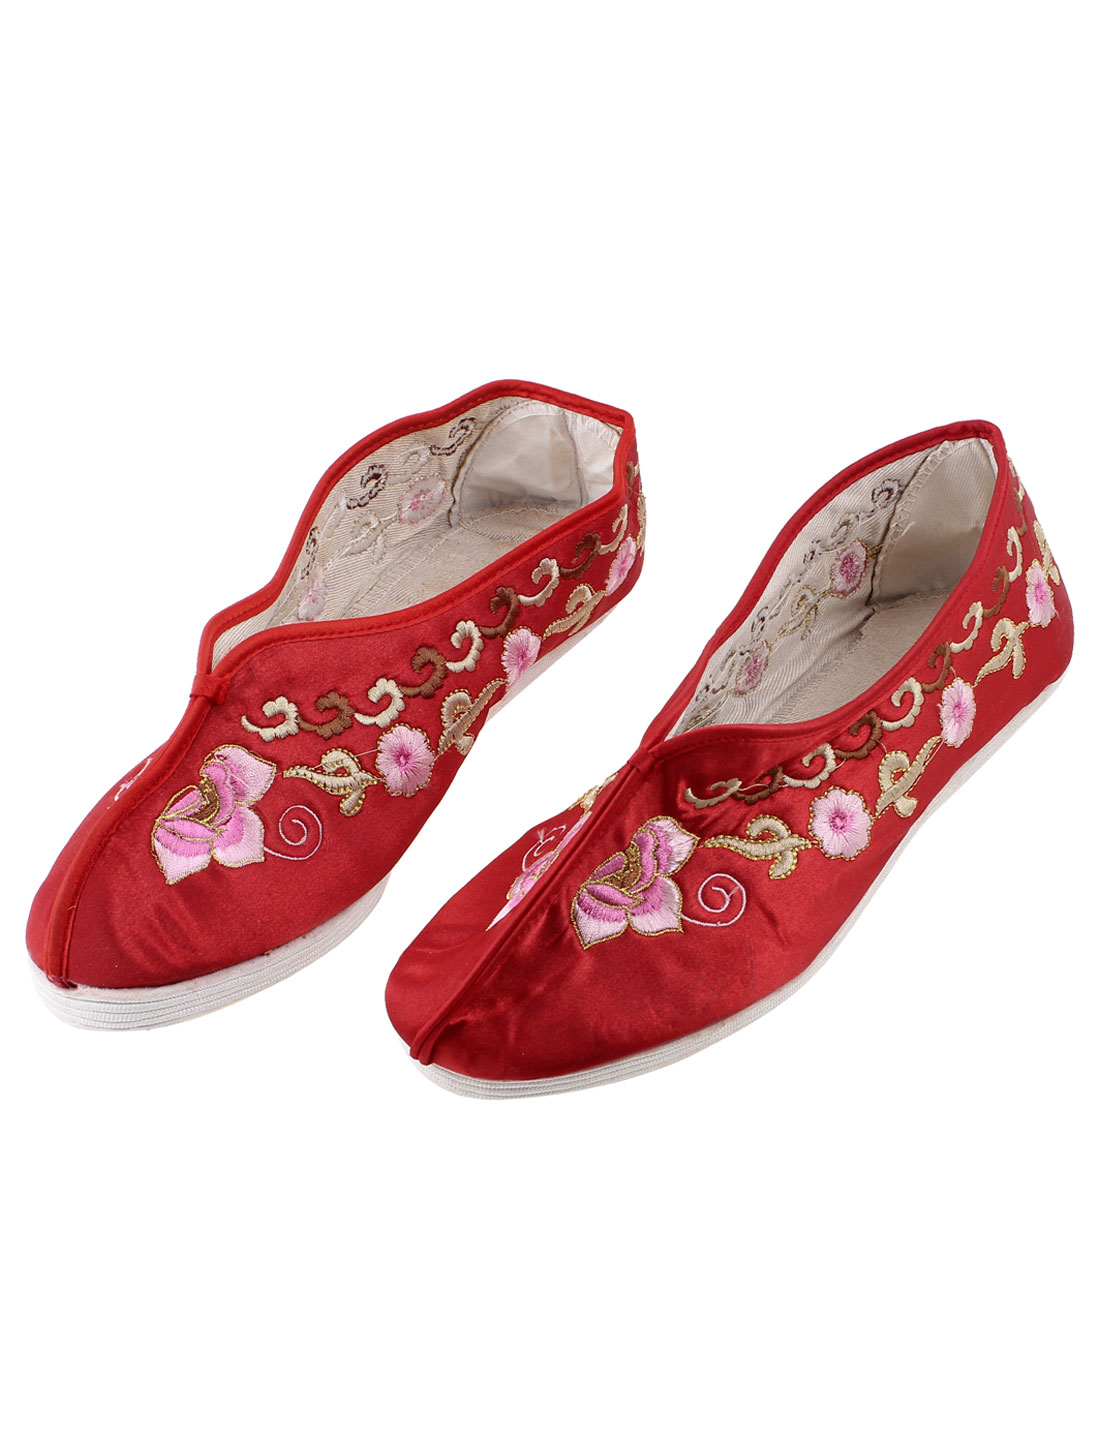 Ladies Red Floral Pattern Slip On Cotton Blends Sneaker Flat Shoes Pair UK Size 3